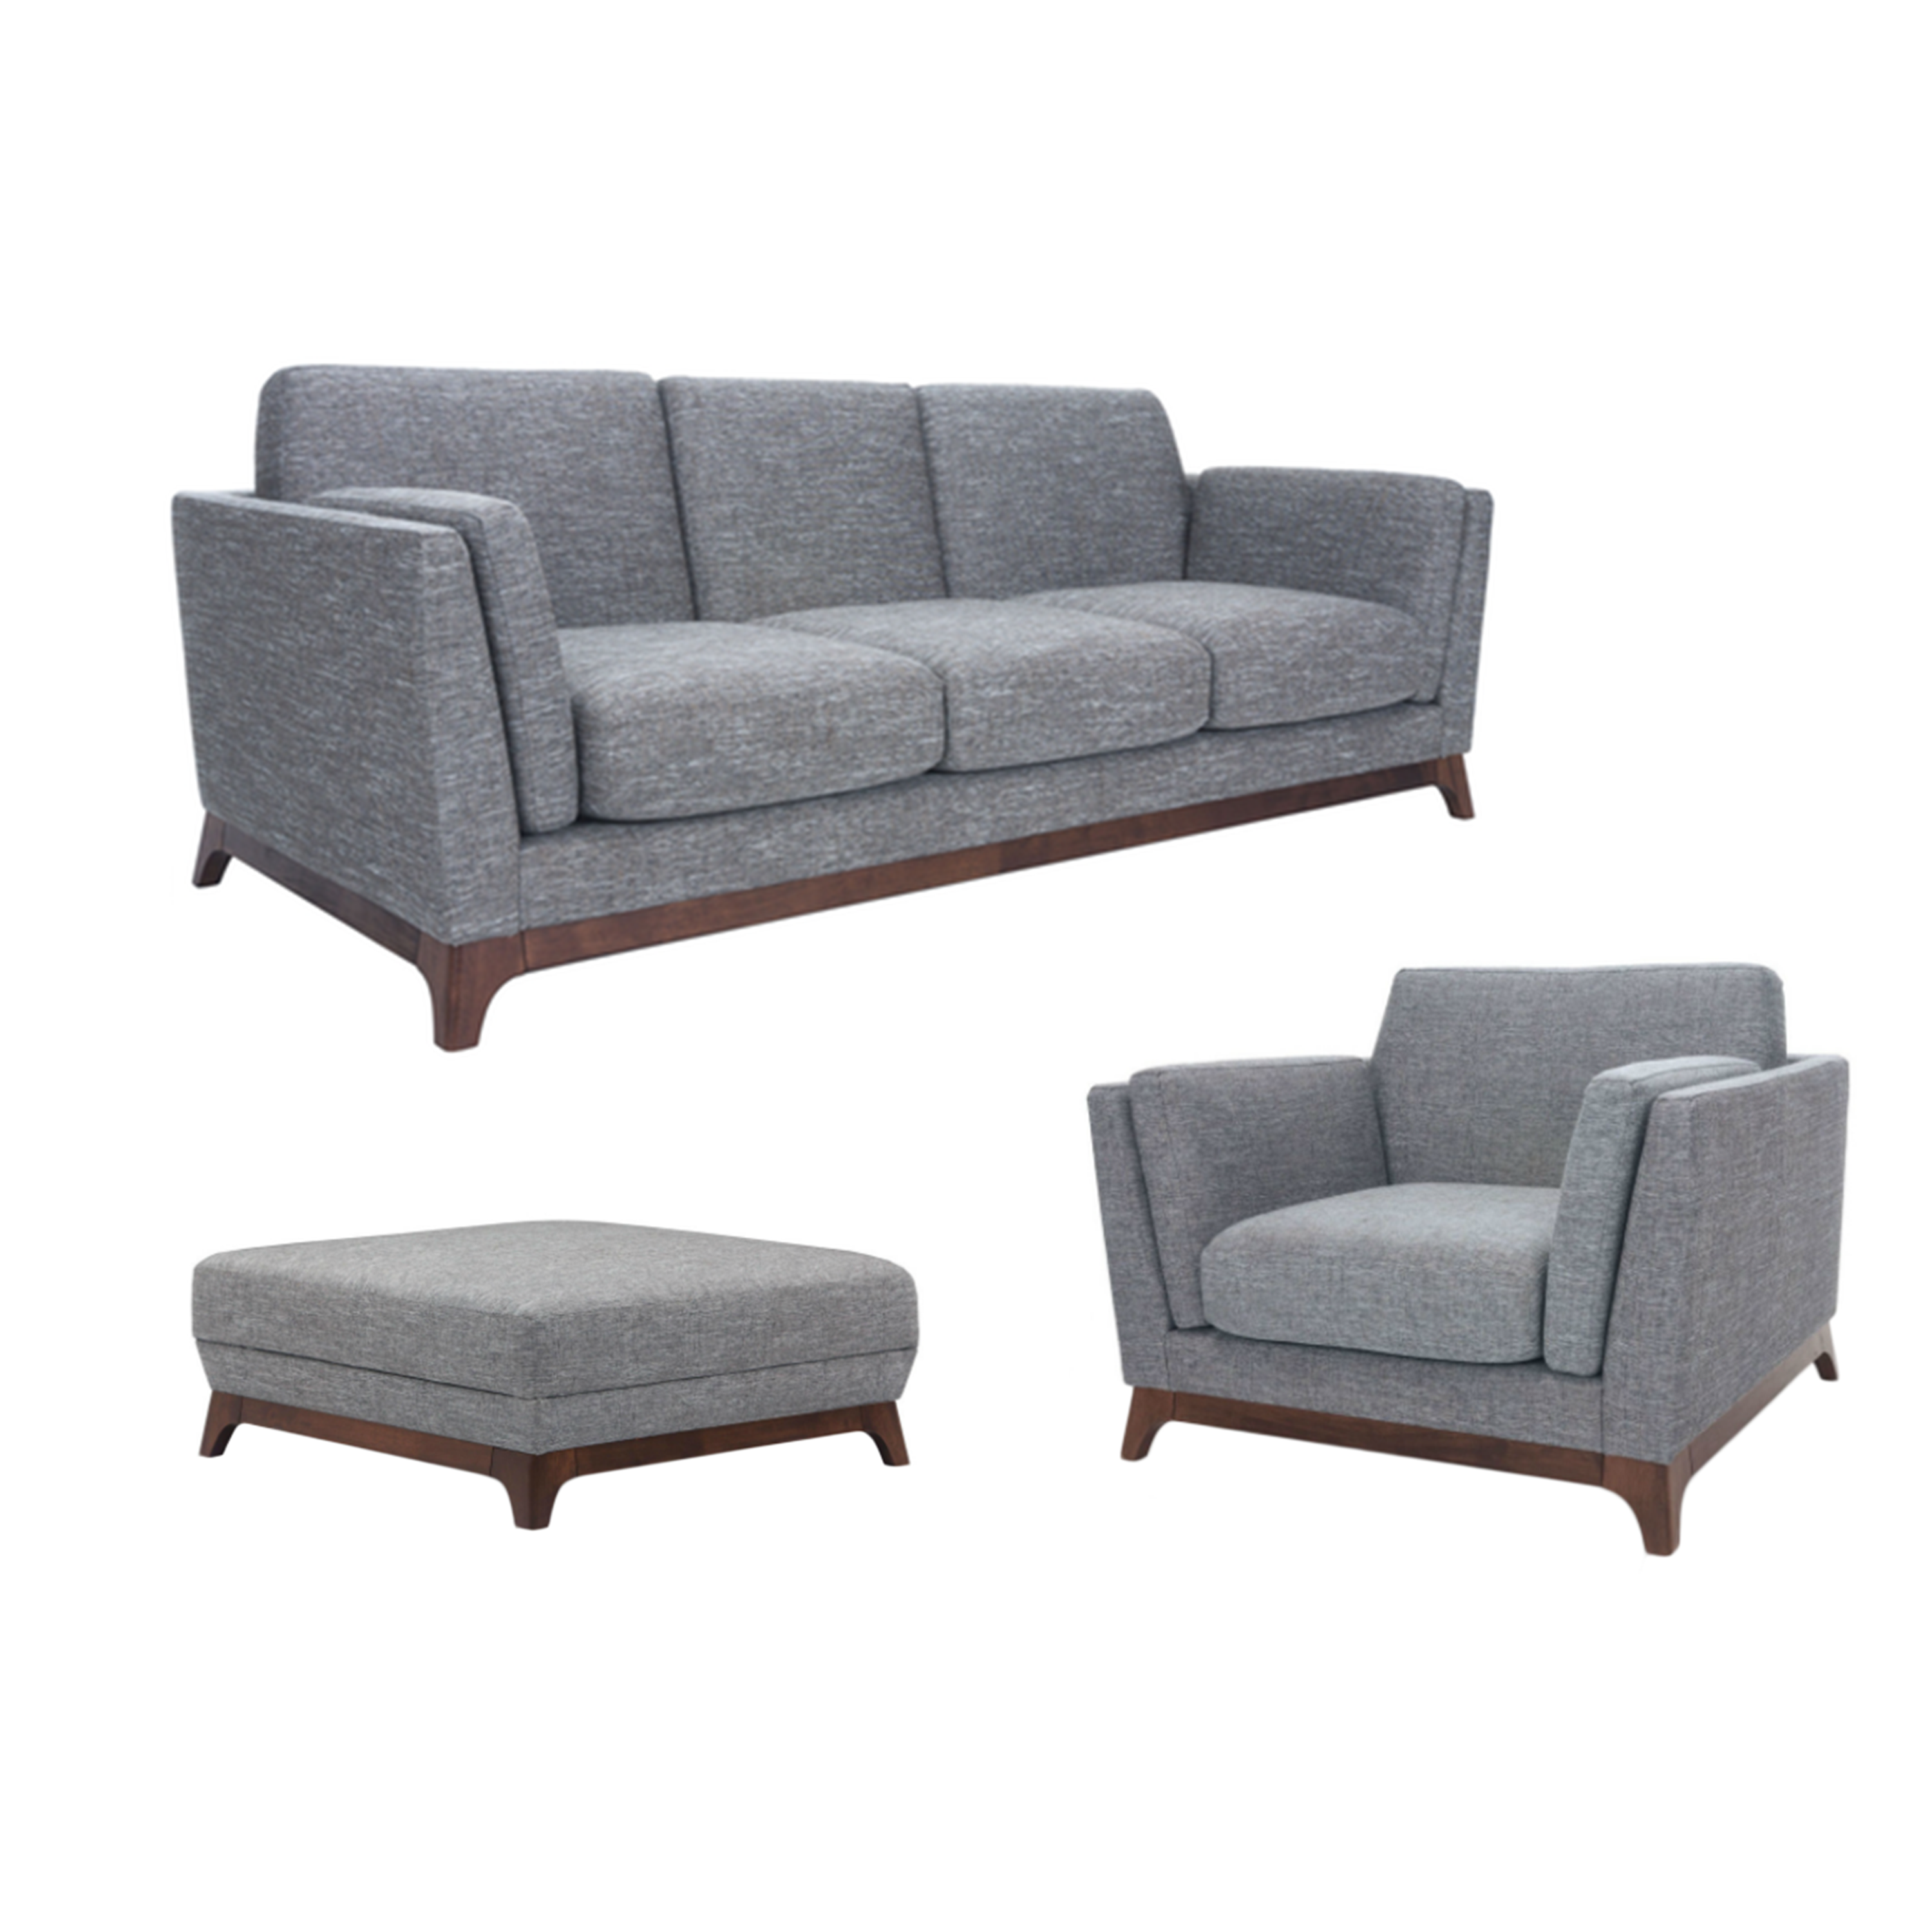 ... Elijah 3 Seater Living Room Set With Ottoman   Cocoa, Pebble   Image 1 Part 58